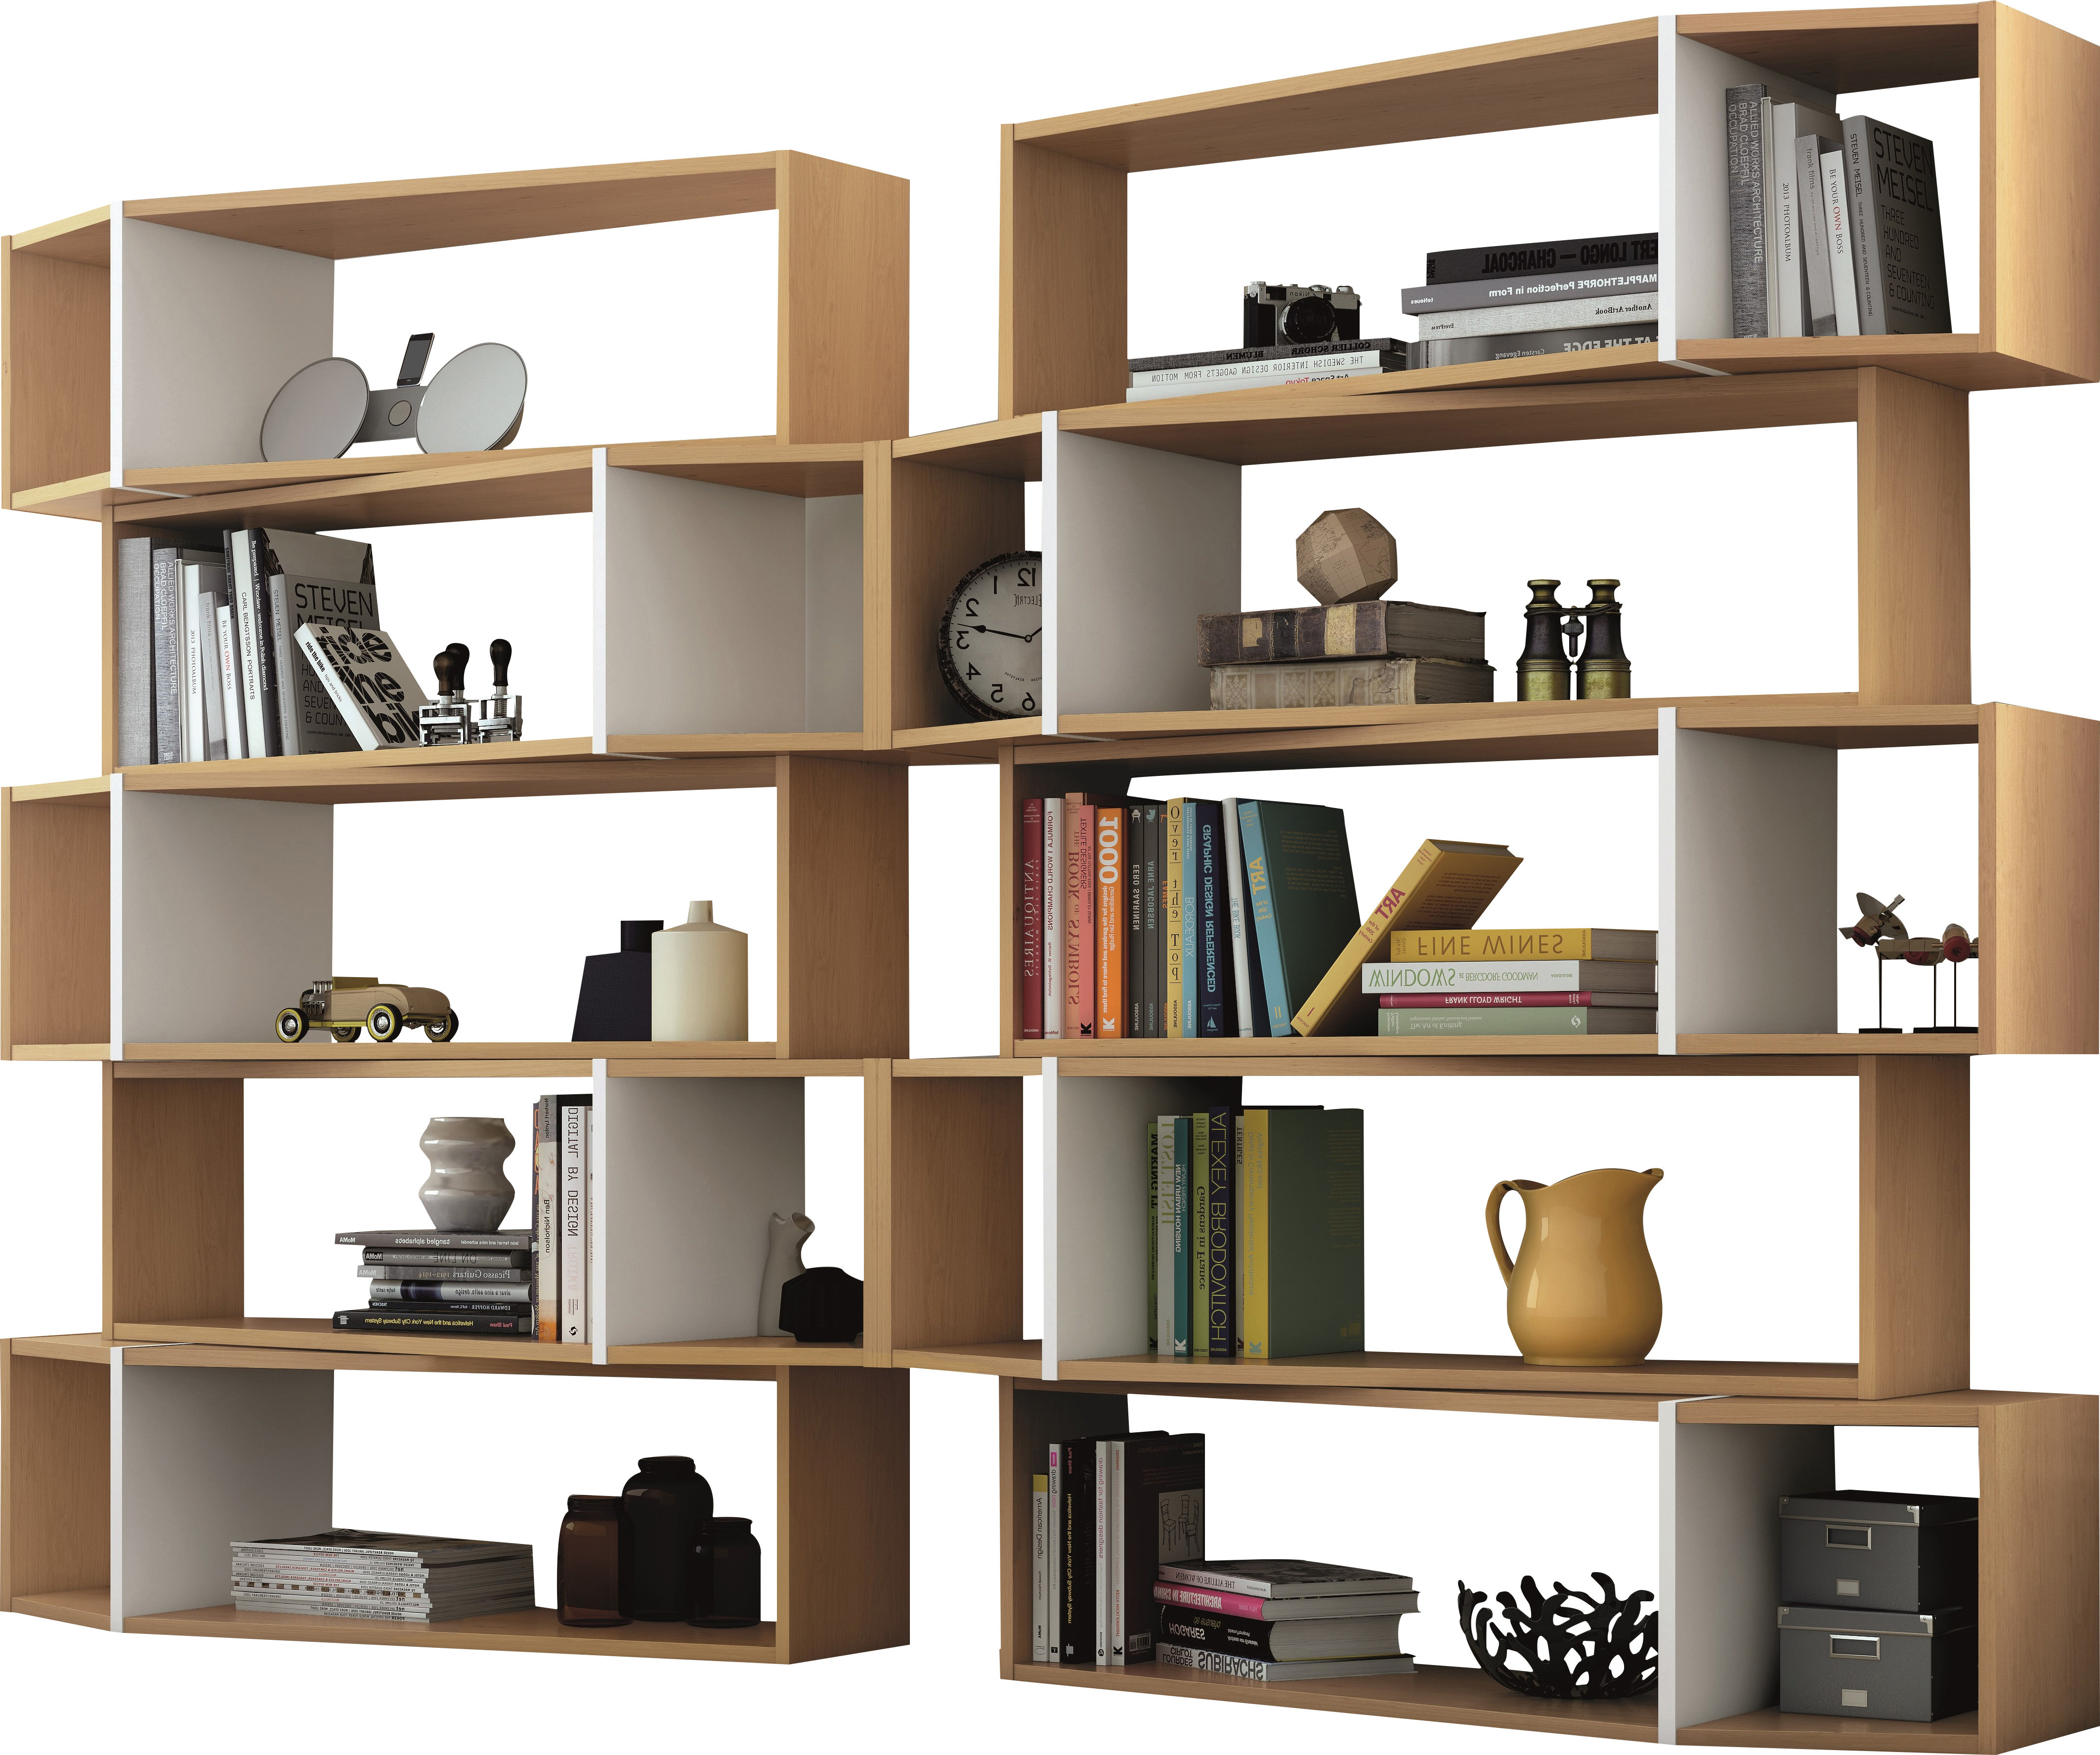 2020 Strauss Cube Unit Bookcases Within Tema One Module Cube Unit Bookcase (View 1 of 20)